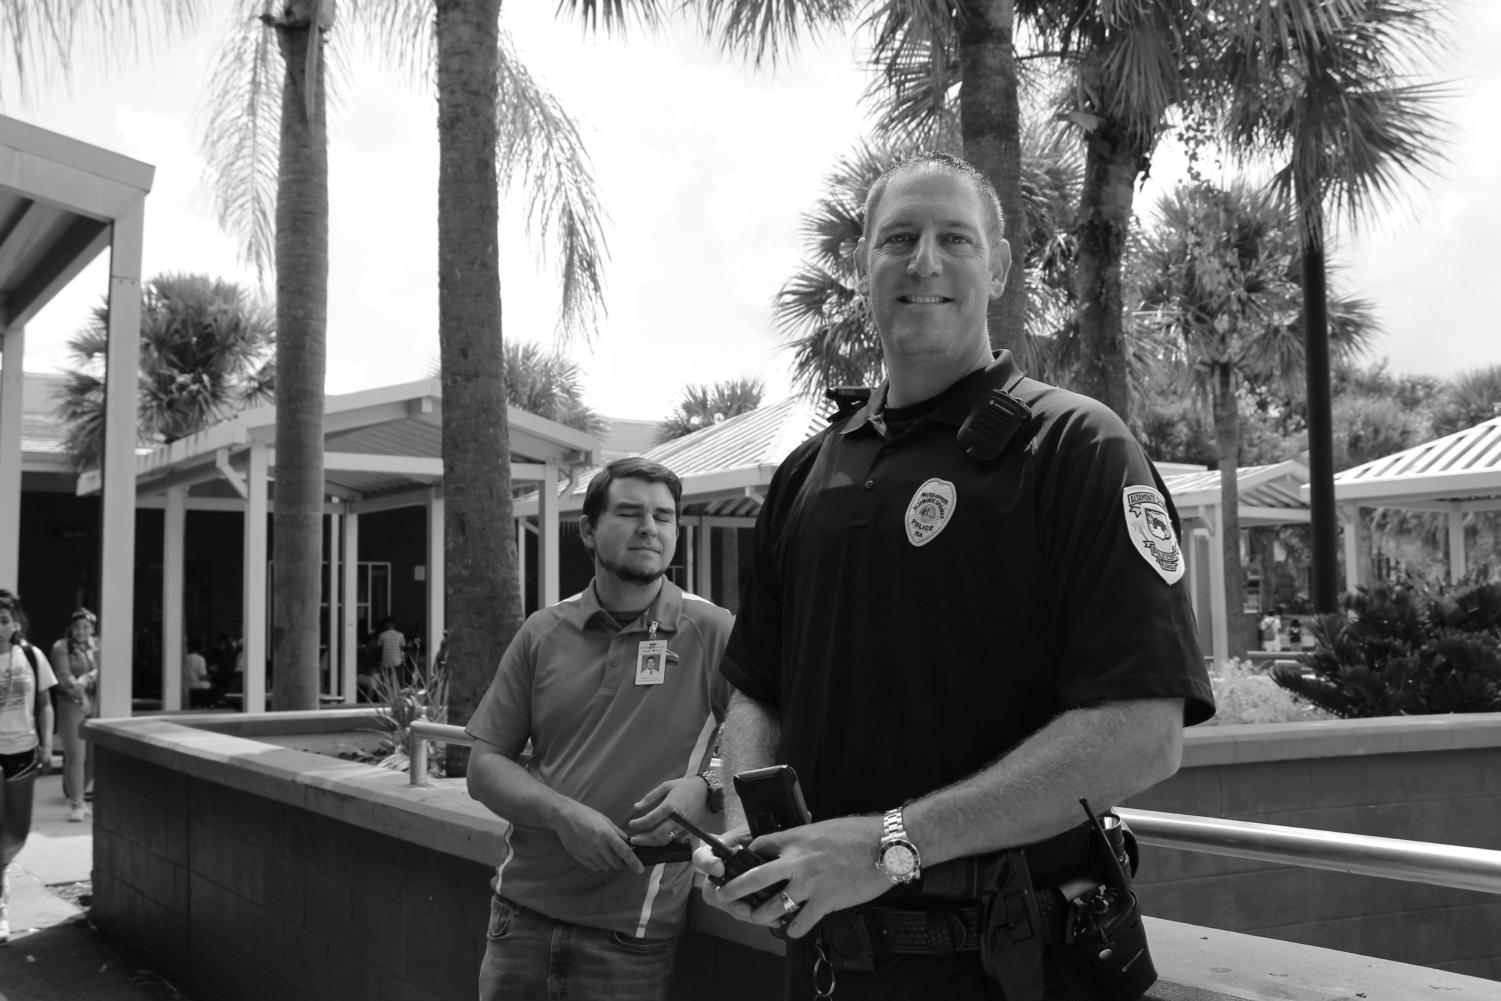 Officer Robert Shapiro monitors both lunches everyday. He also patrols campus between and during classes.